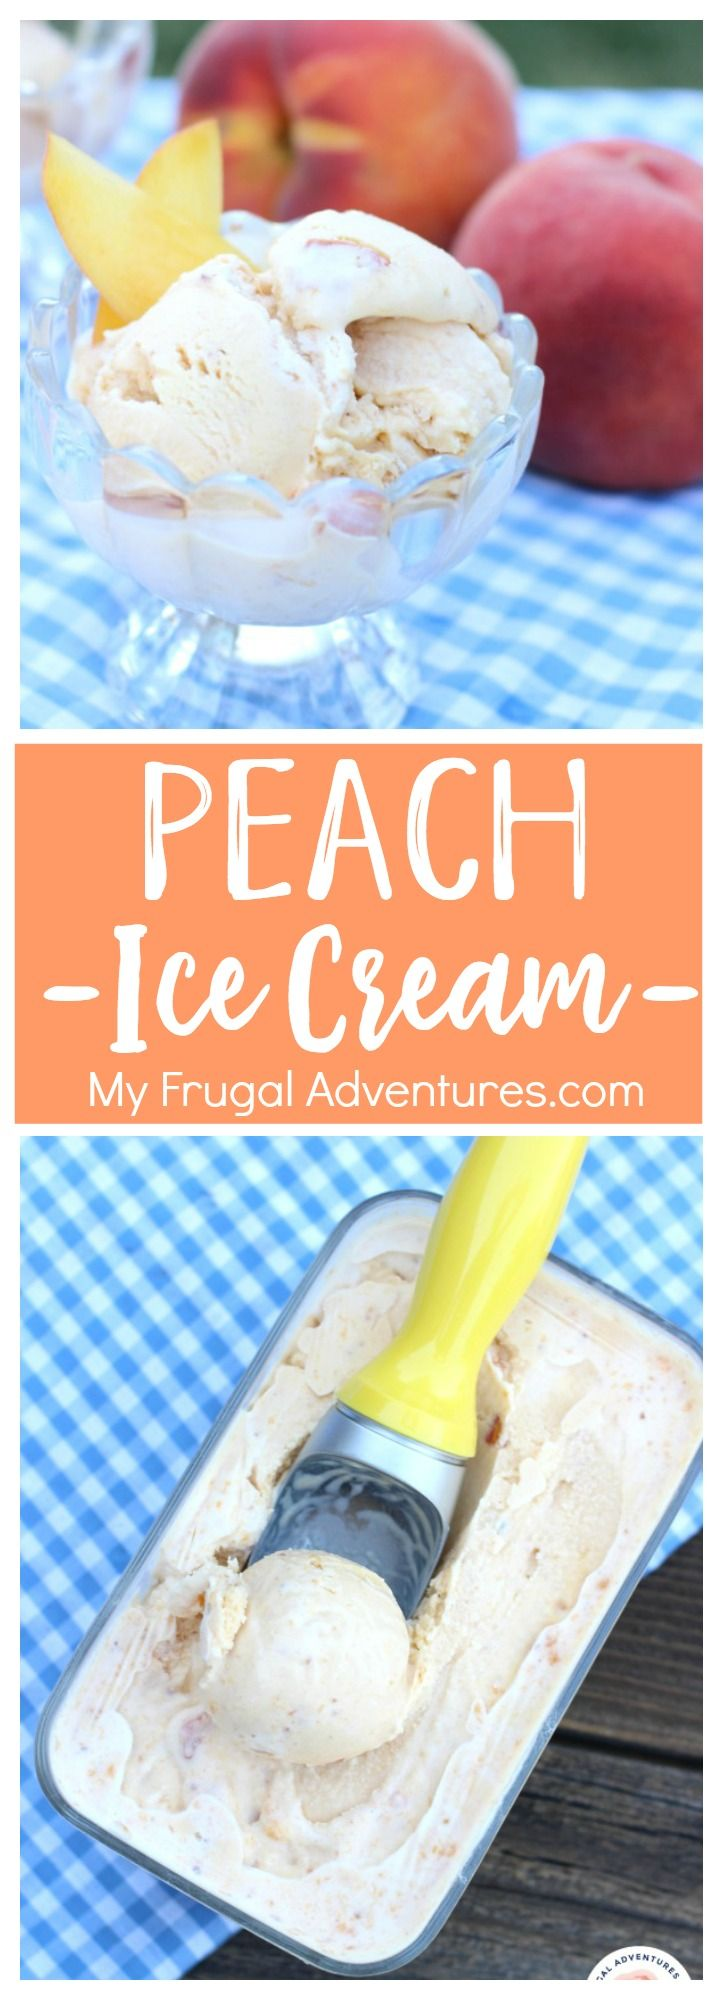 Simple no churn Peach Ice Cream recipe.  So delicious!  A perfect bite of summertime.